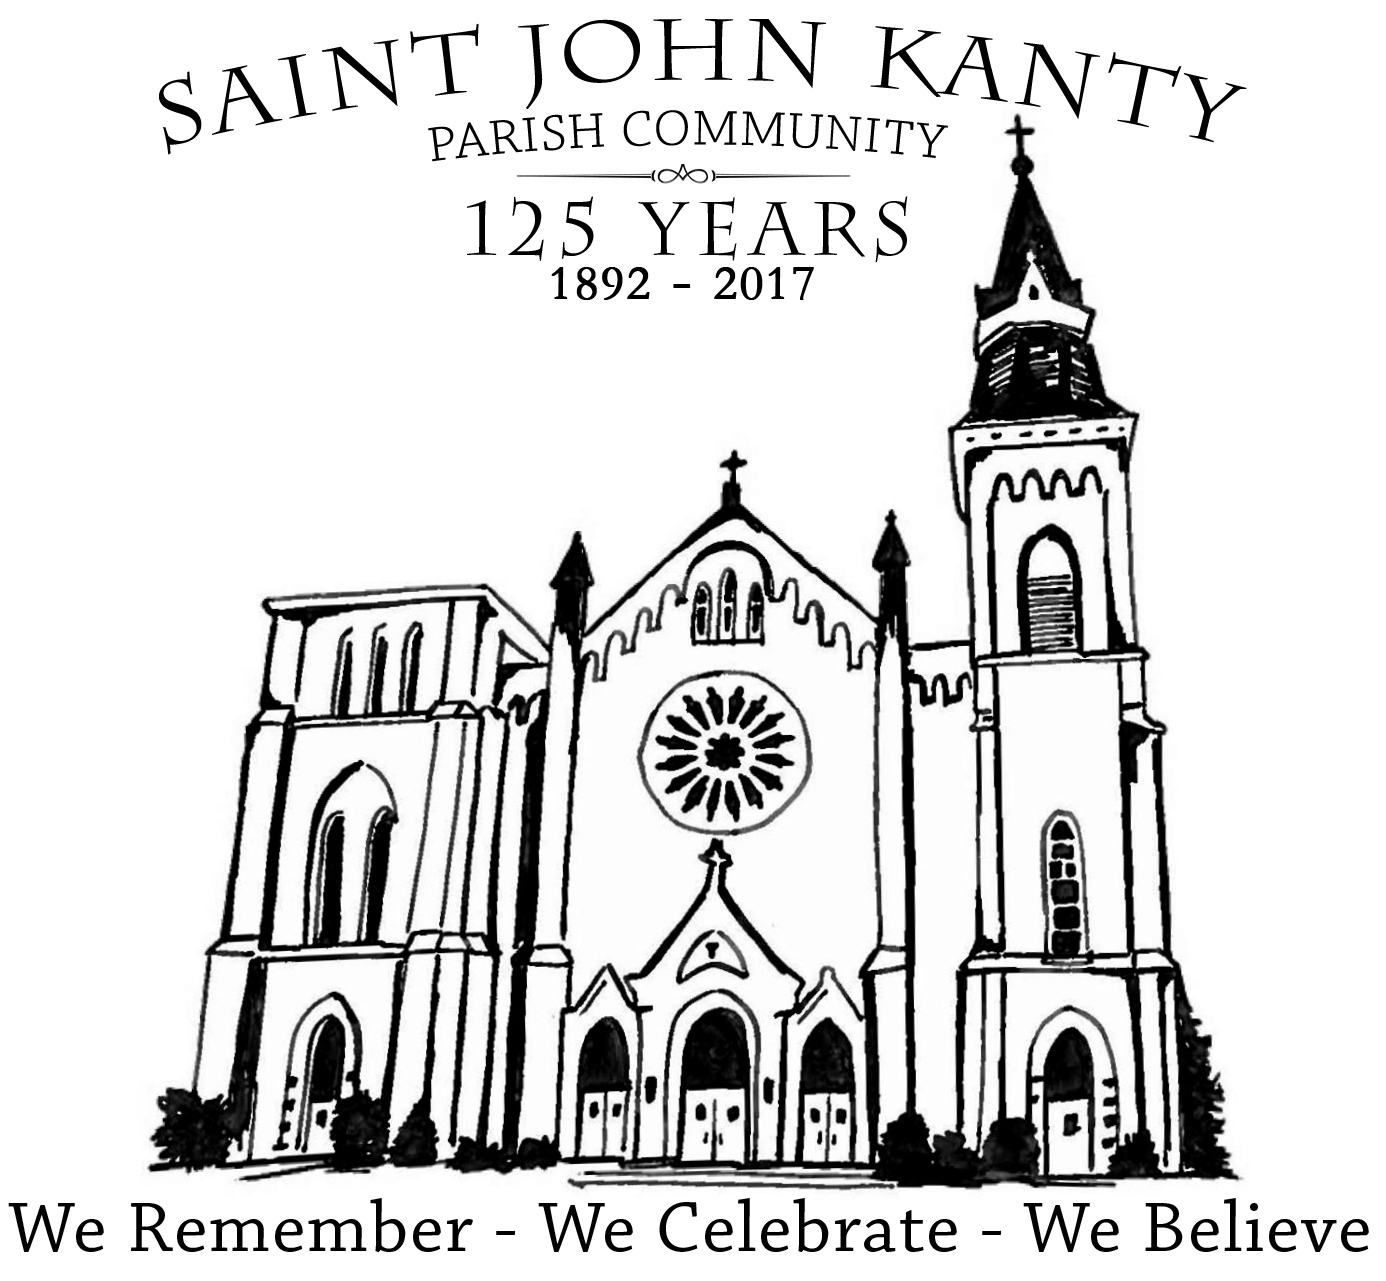 About Our 125th Anniversary St John Kanty Church